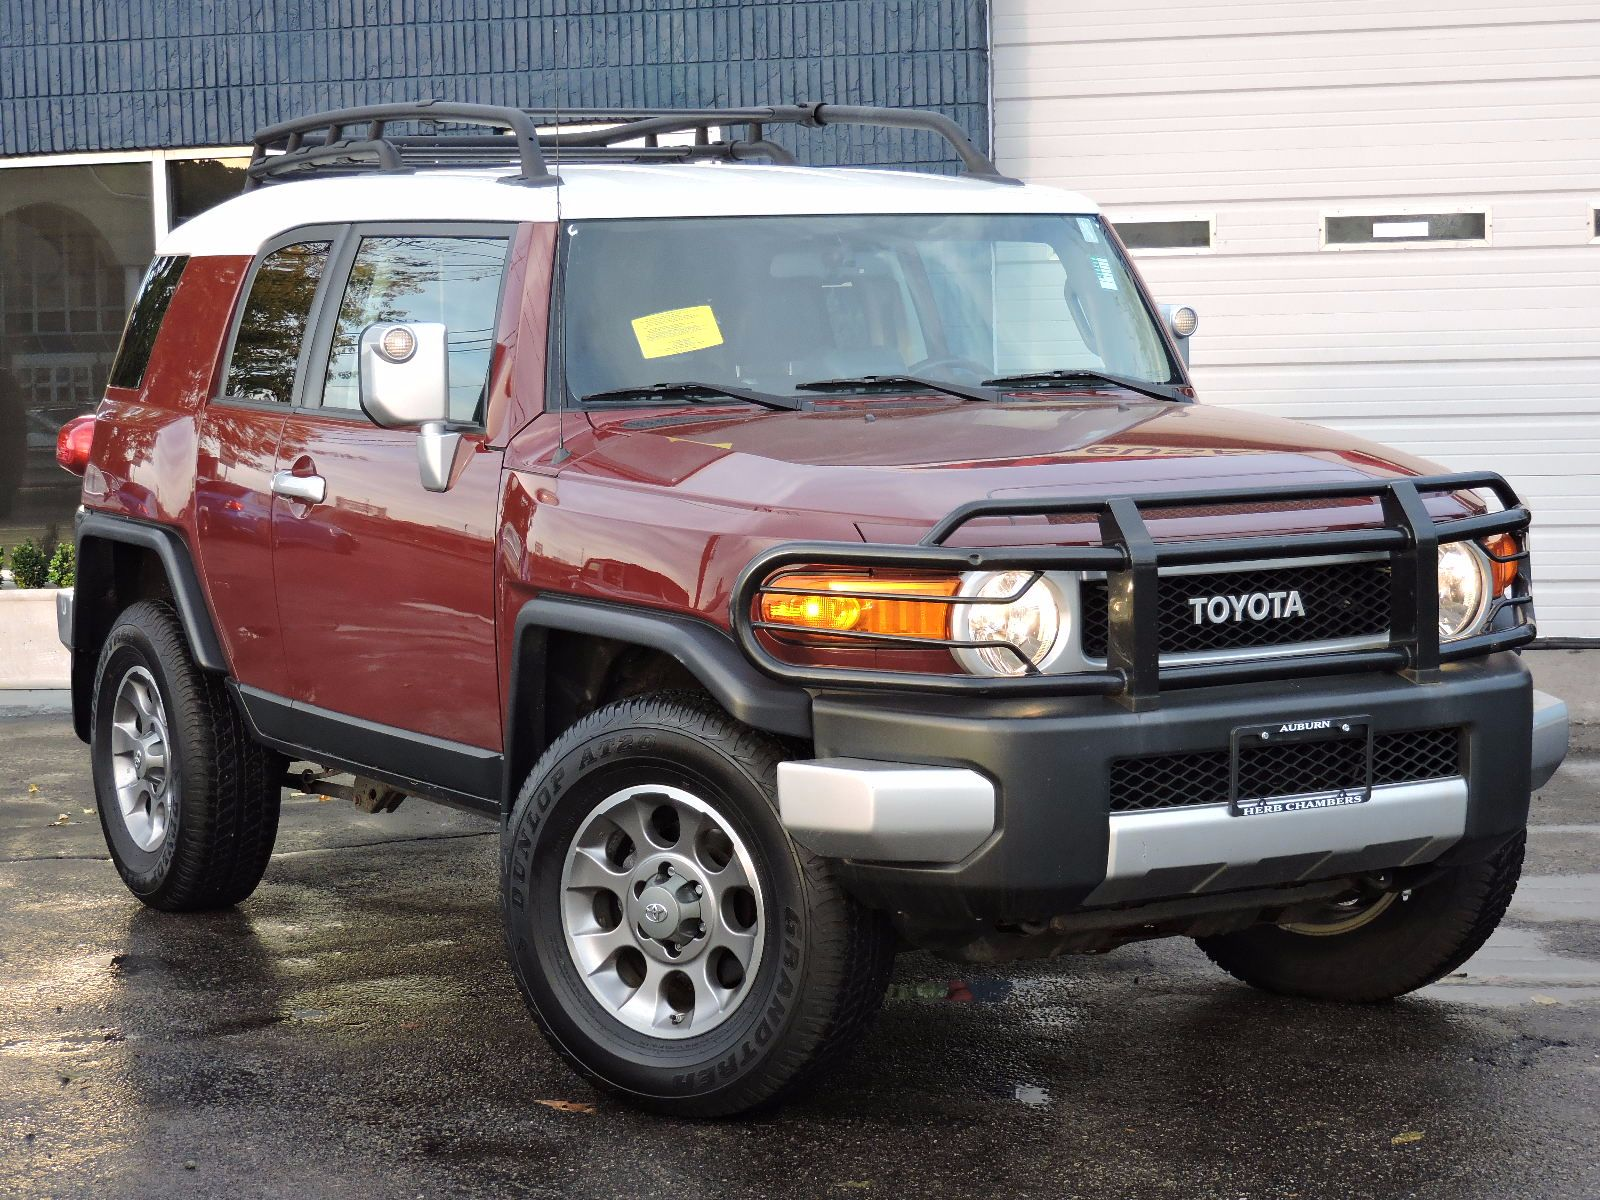 2011 Toyota FJ Cruiser - All Wheel Drive